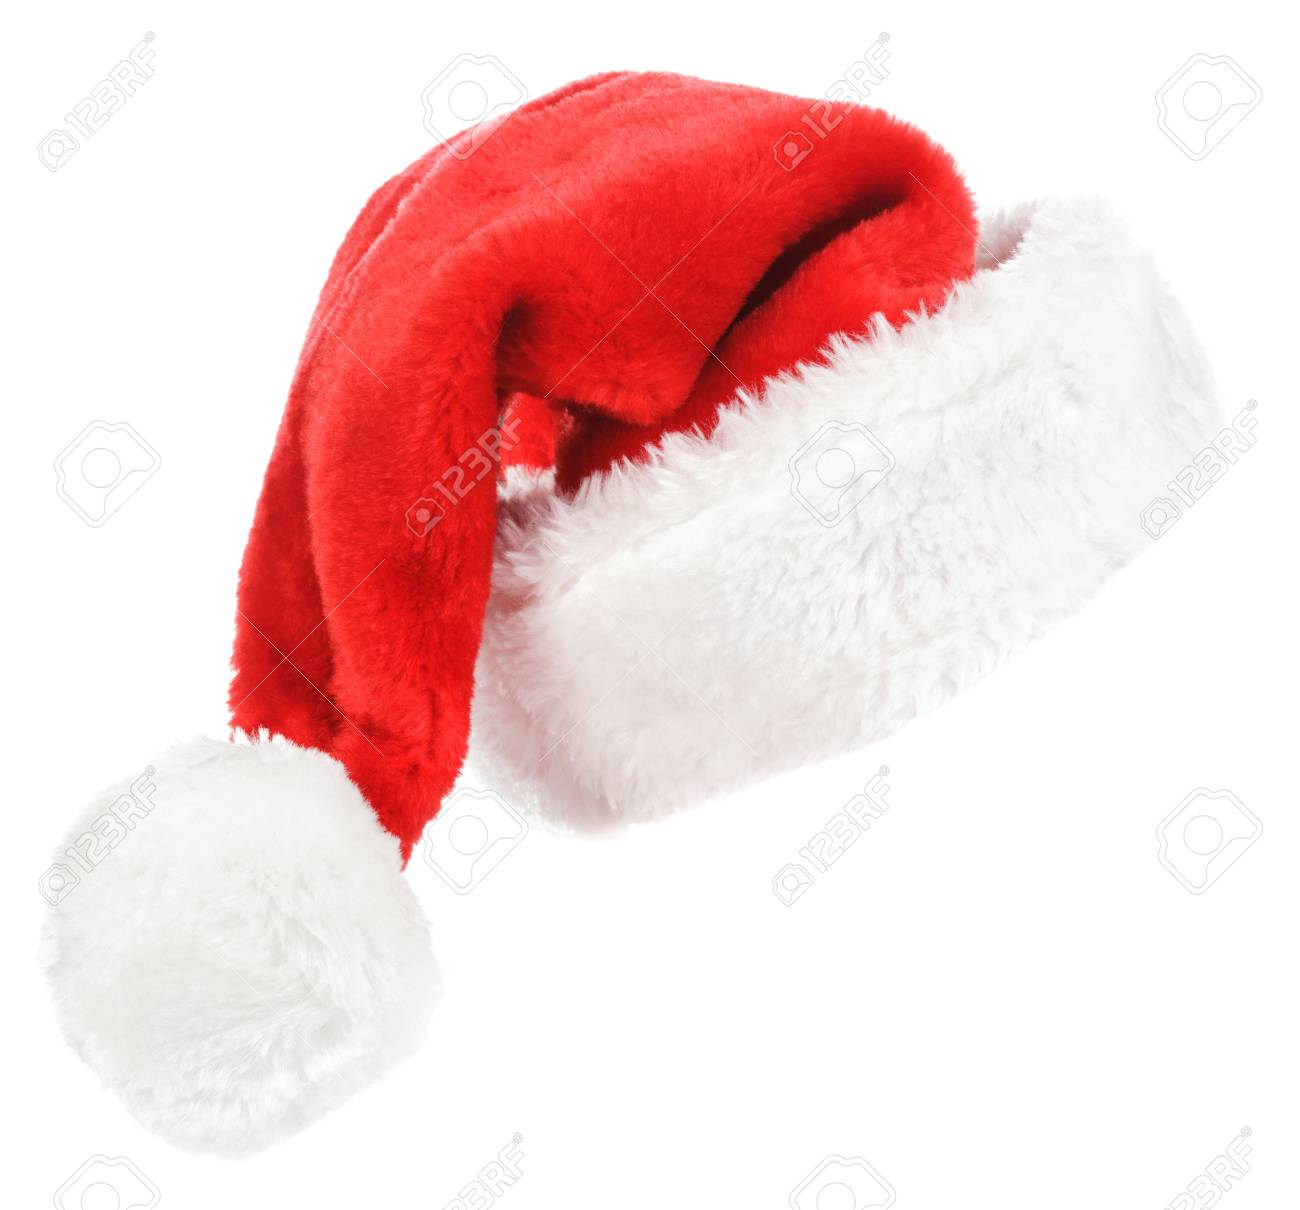 Santa red hat isolated in white background Stock Photo - 15783064